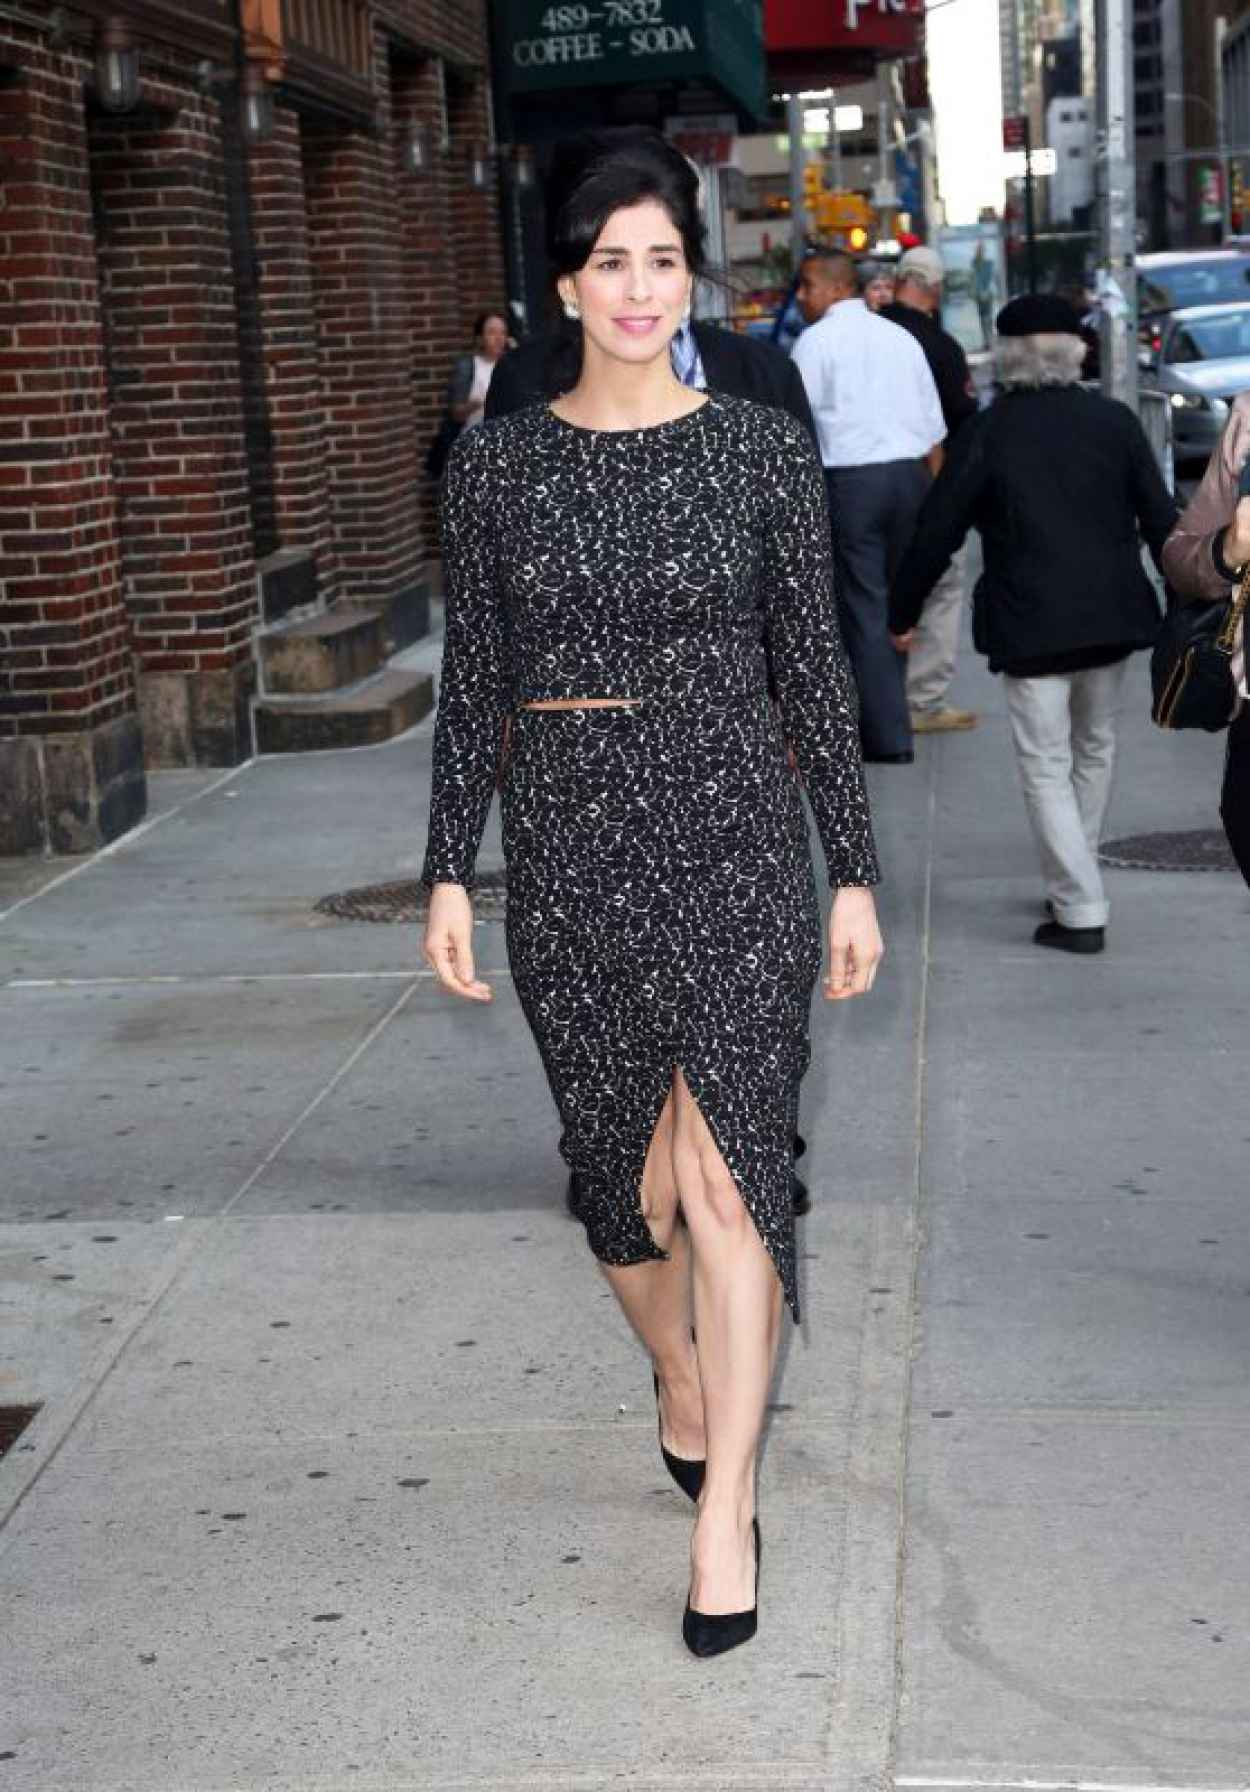 Sarah Silverman - Outside The Late Show With Stephen Colbert in NYC, October 2015-1